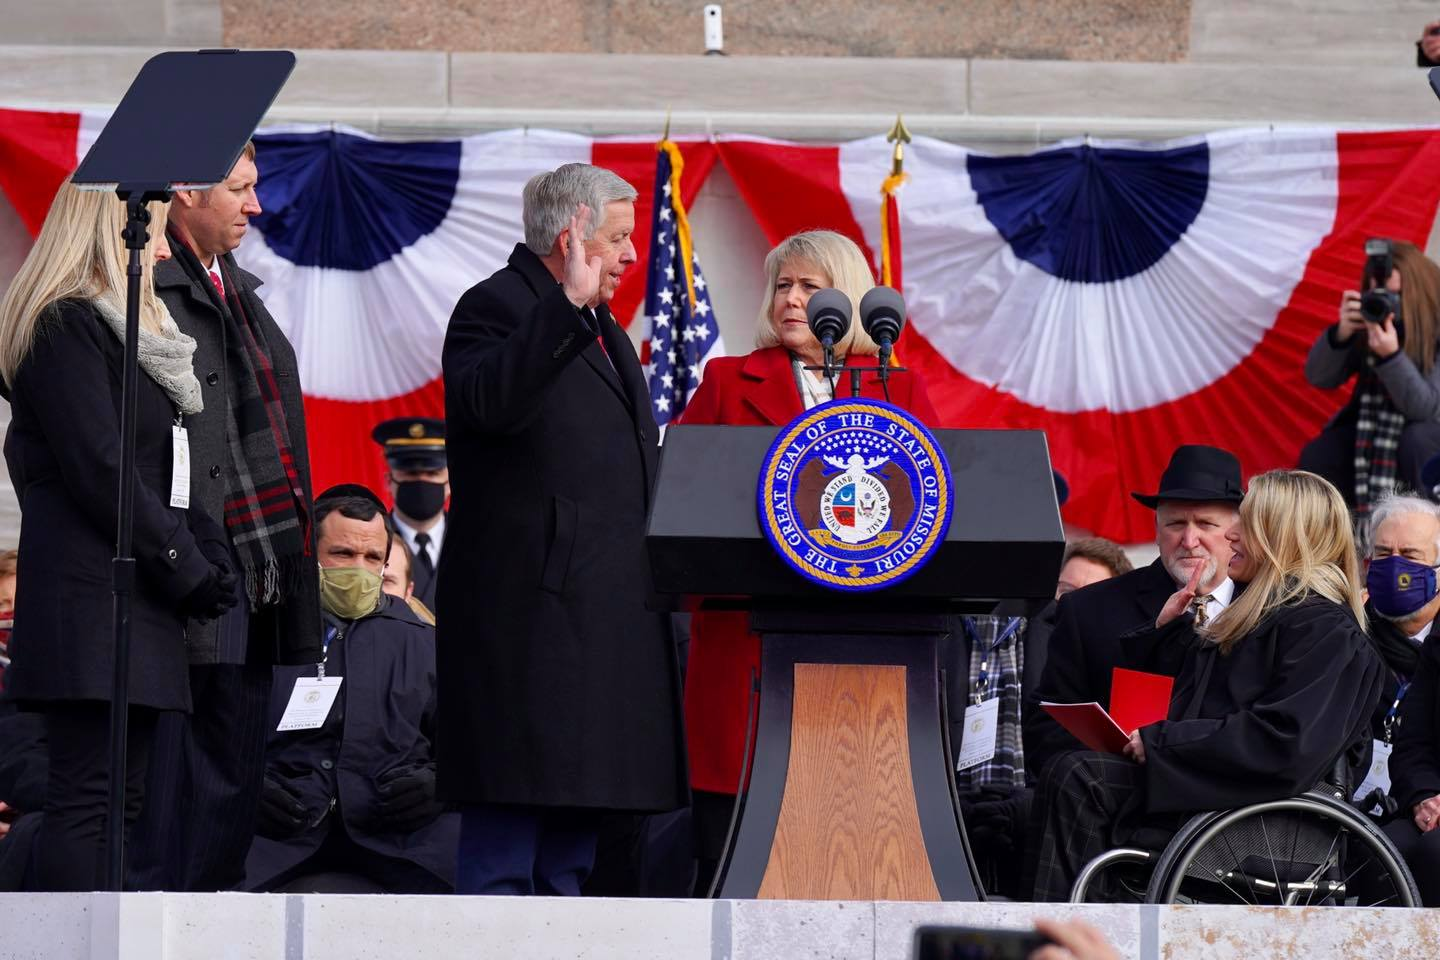 Governor Parson Inaugurated